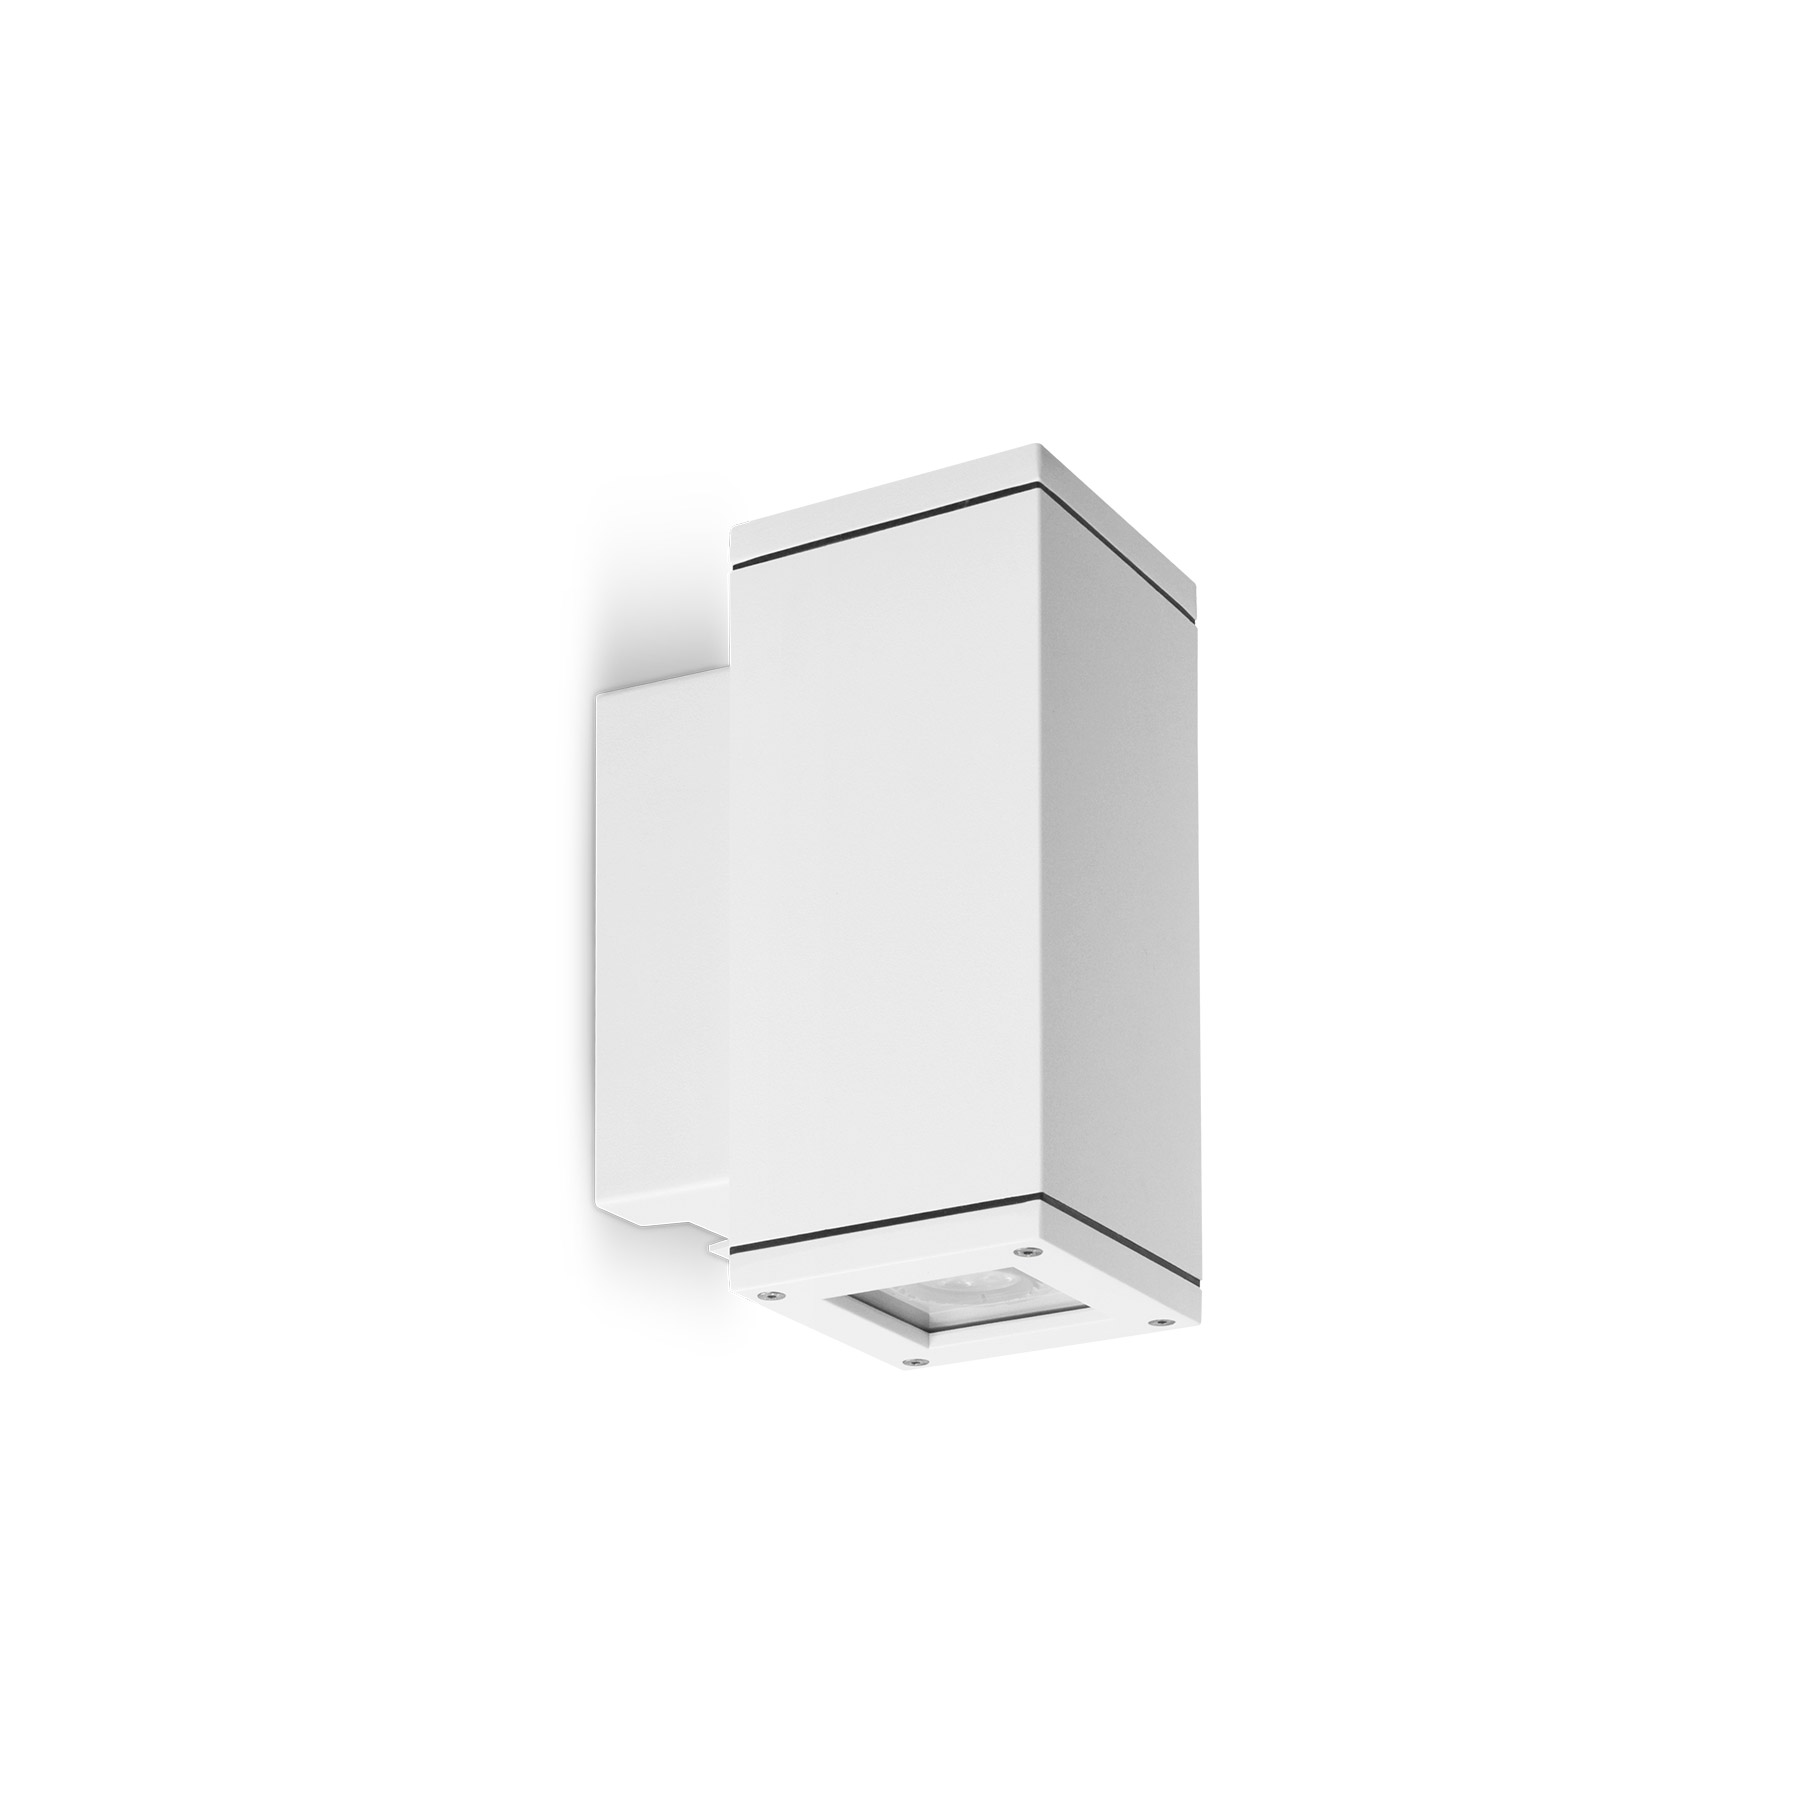 KUBUS Square Wall Downlight